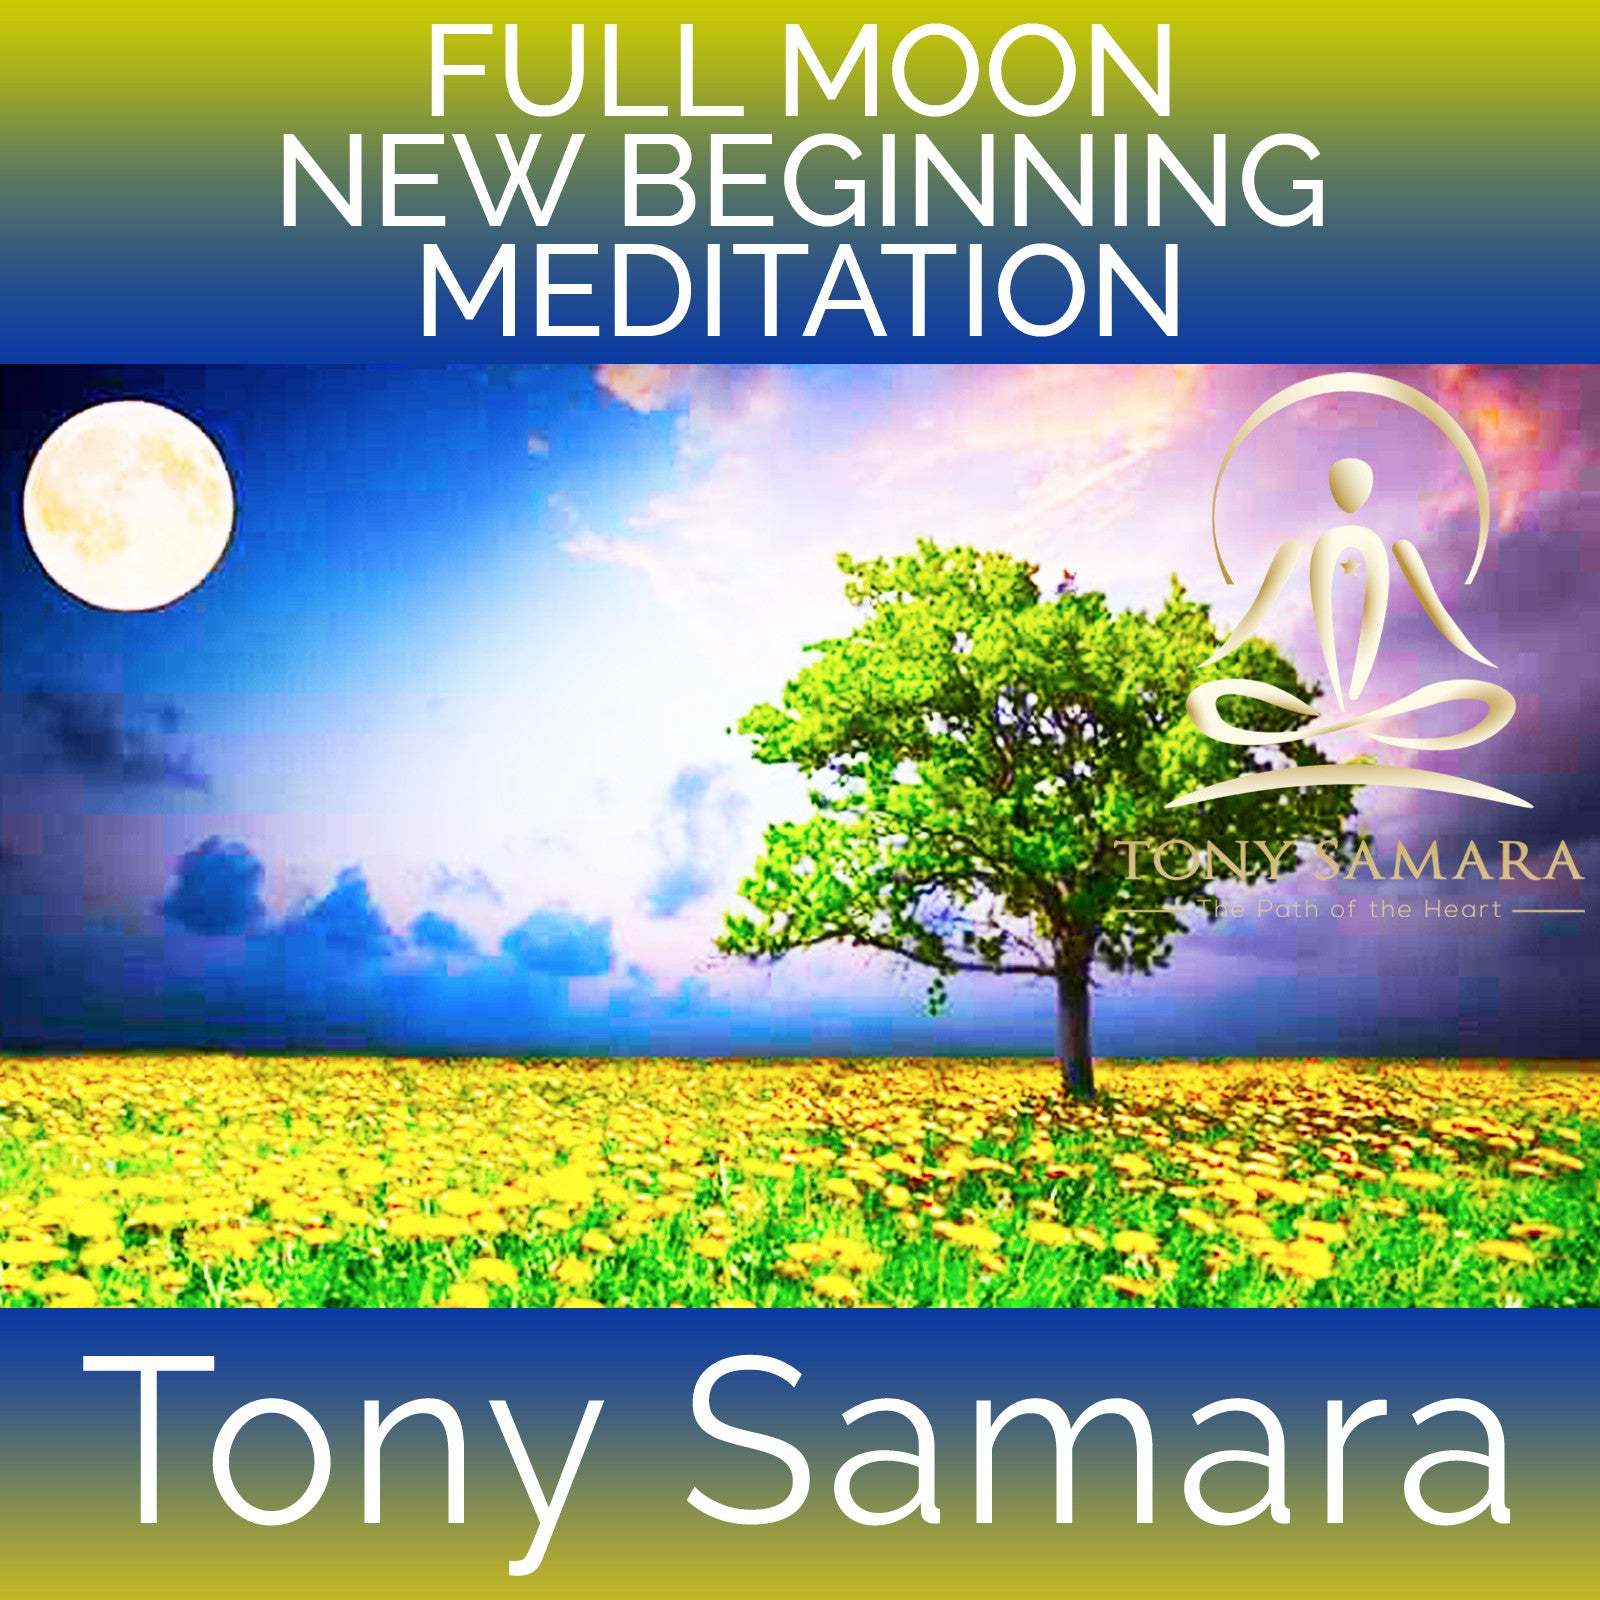 Full Moon New Beginning Meditation (MP3 Audio Download) - Tony Samara Meditation